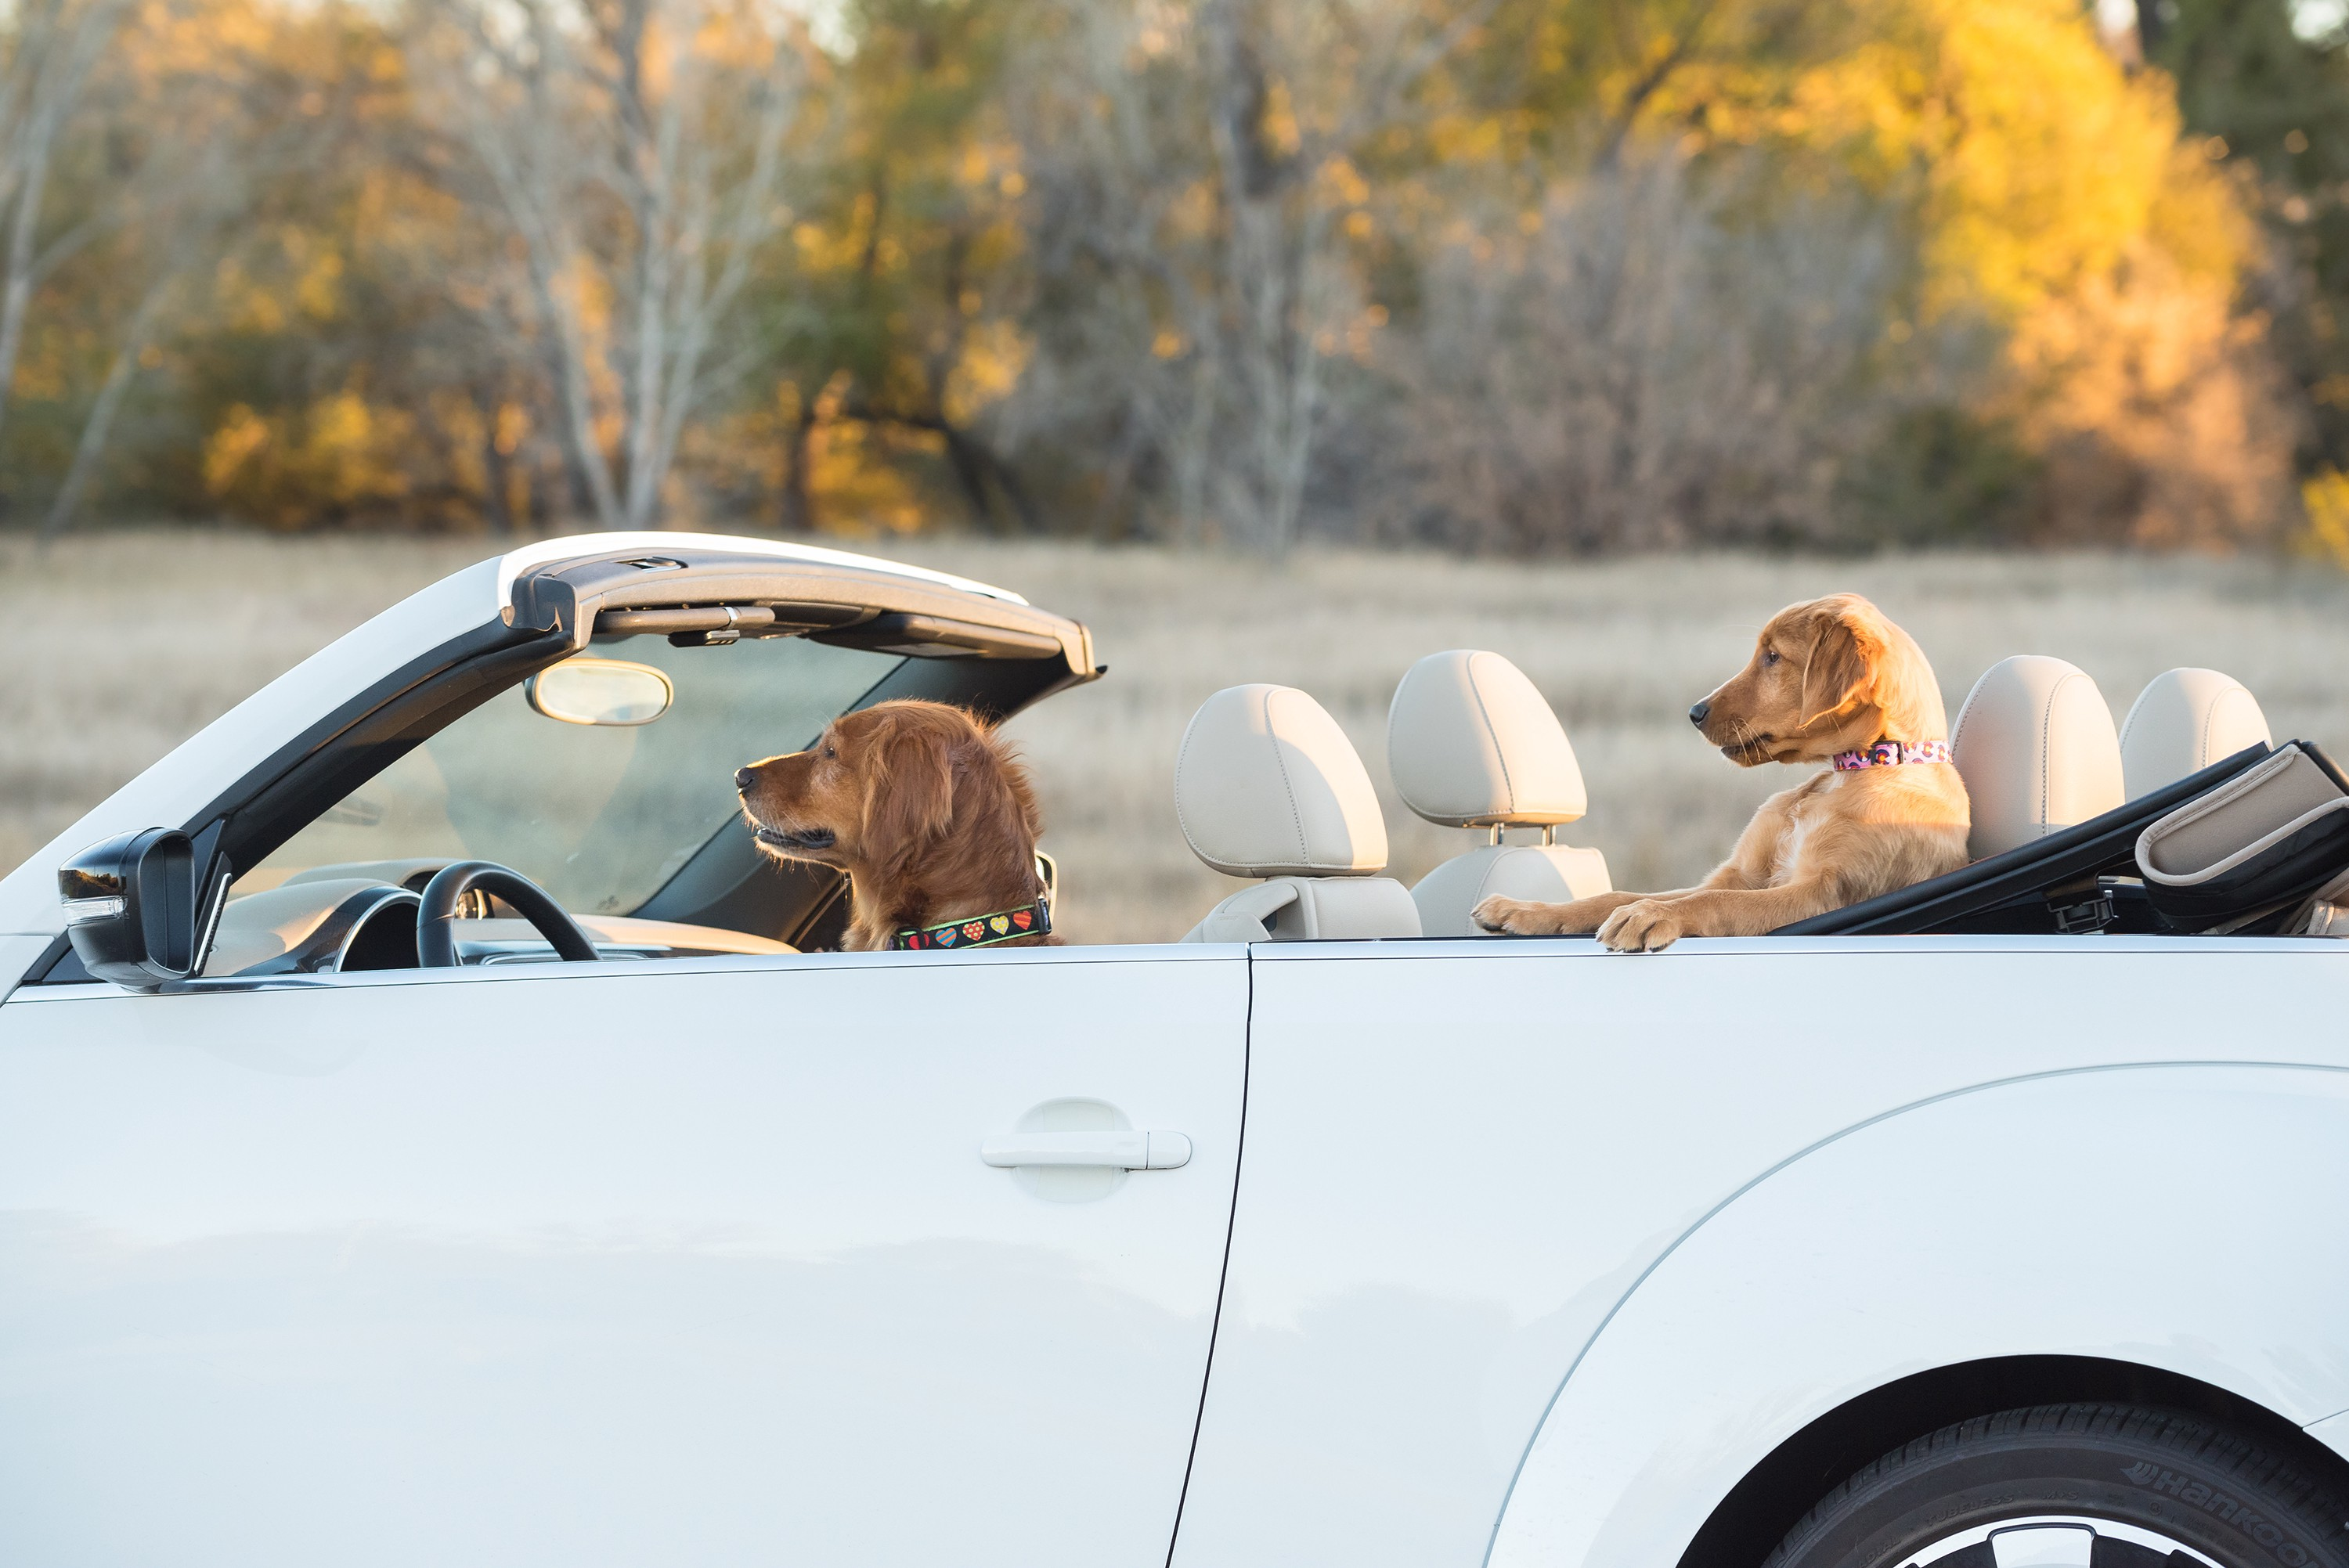 Two dogs are sitting in a white convertible, one in the drivers seat at the wheel and the other chilling in the back